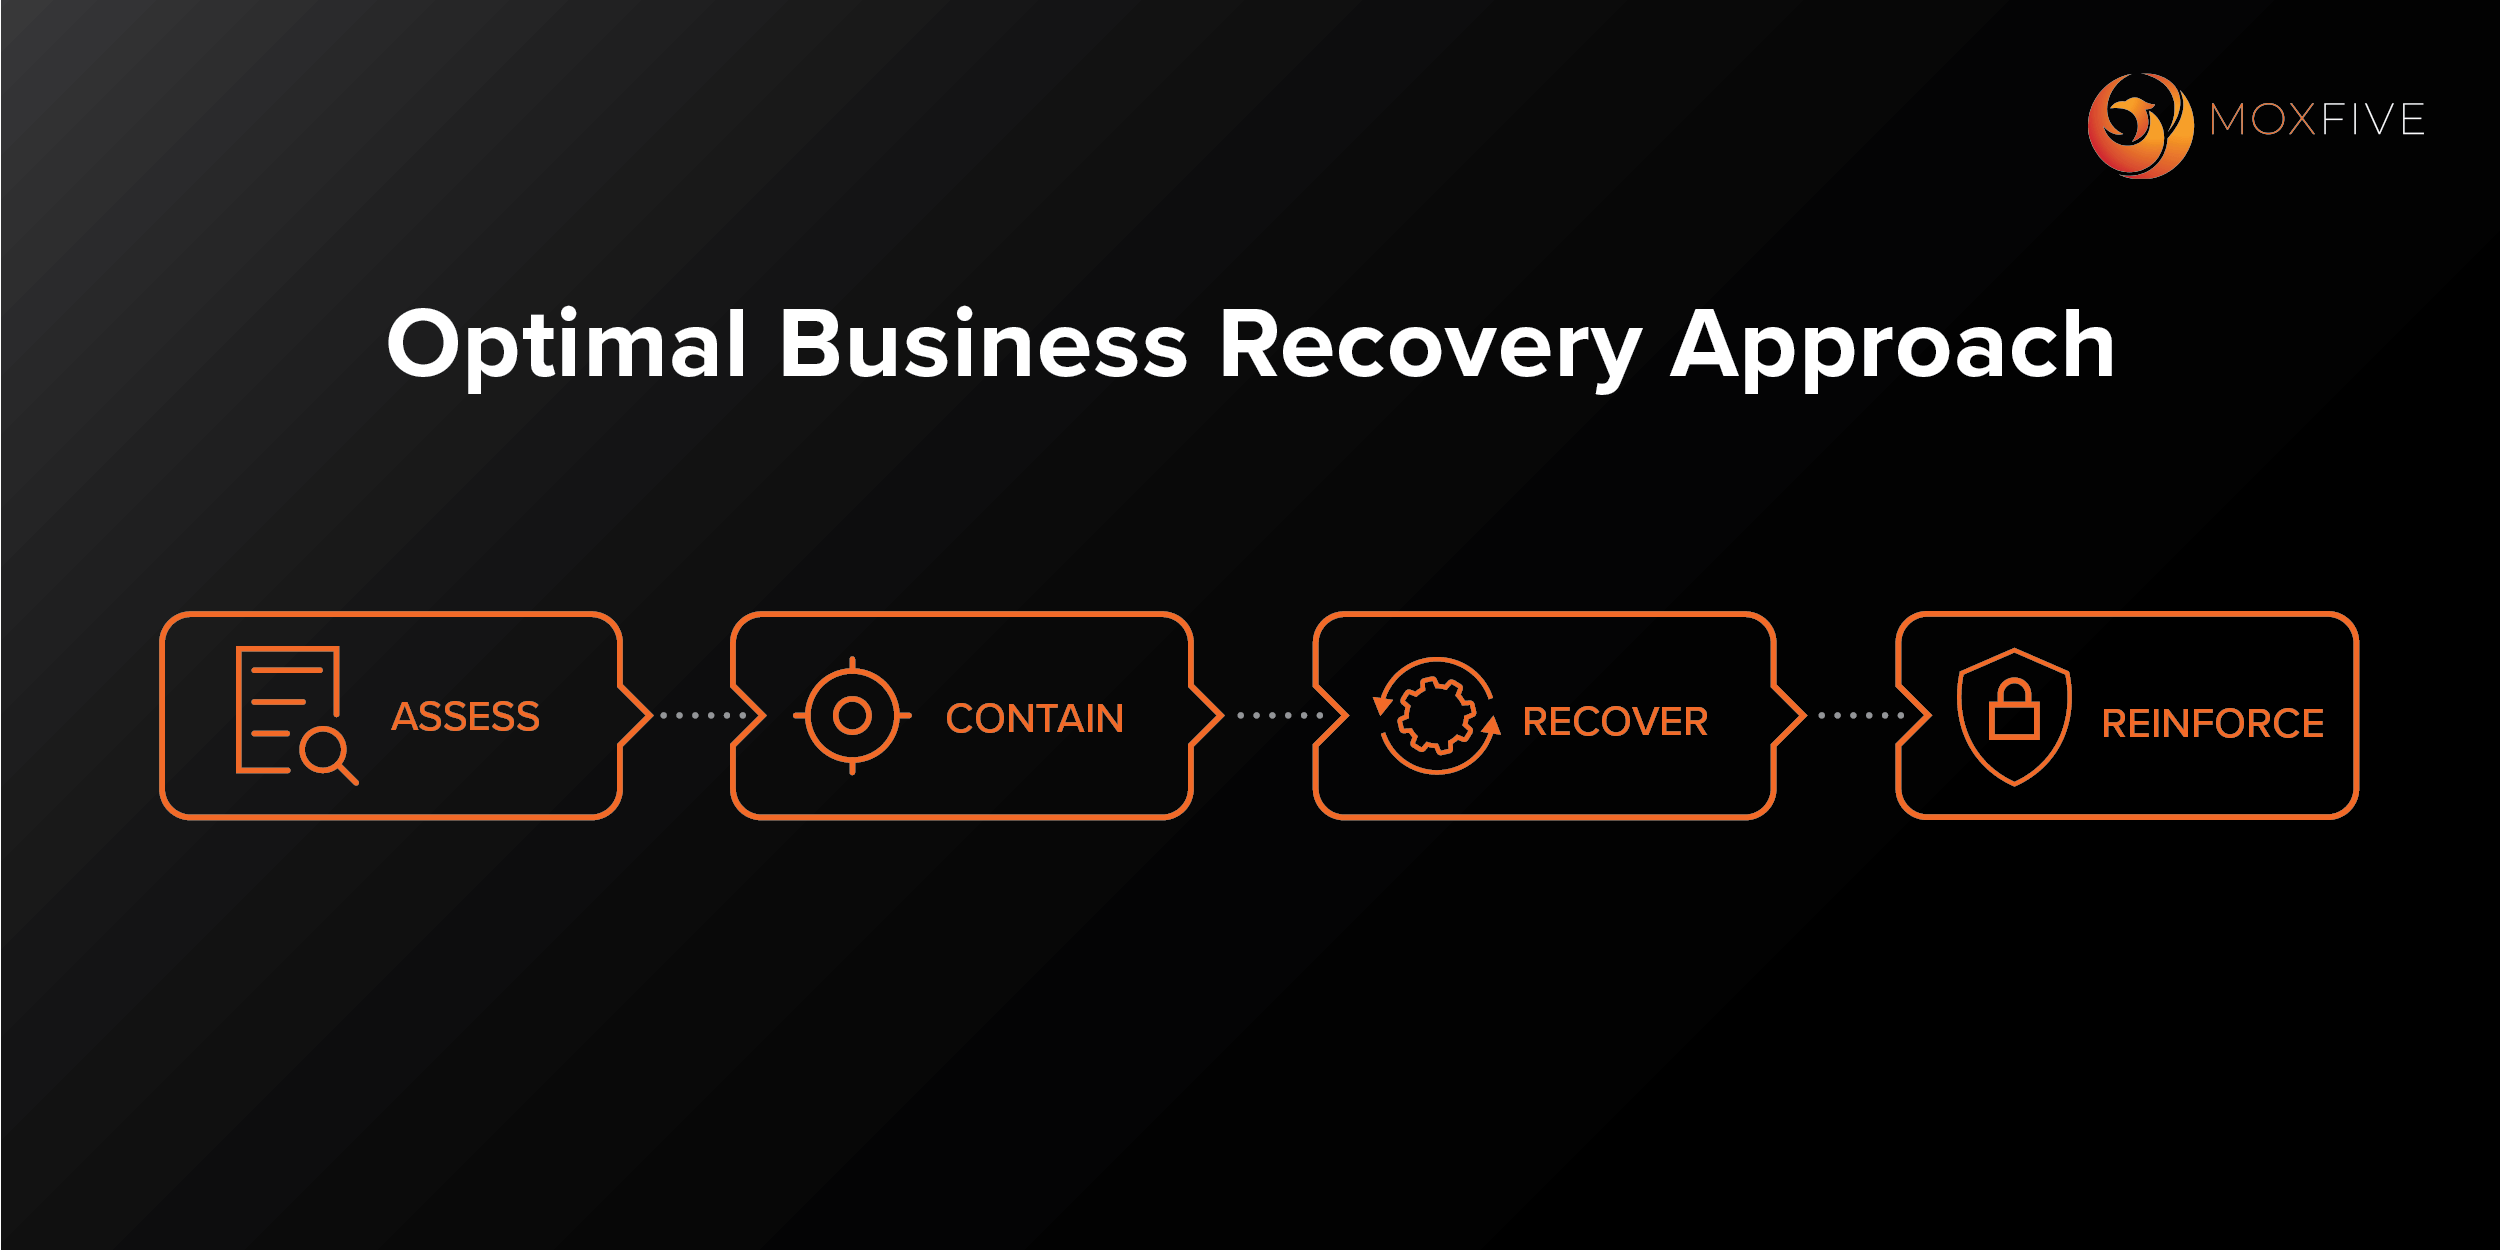 MOXFIVE's Business Recovery Approach